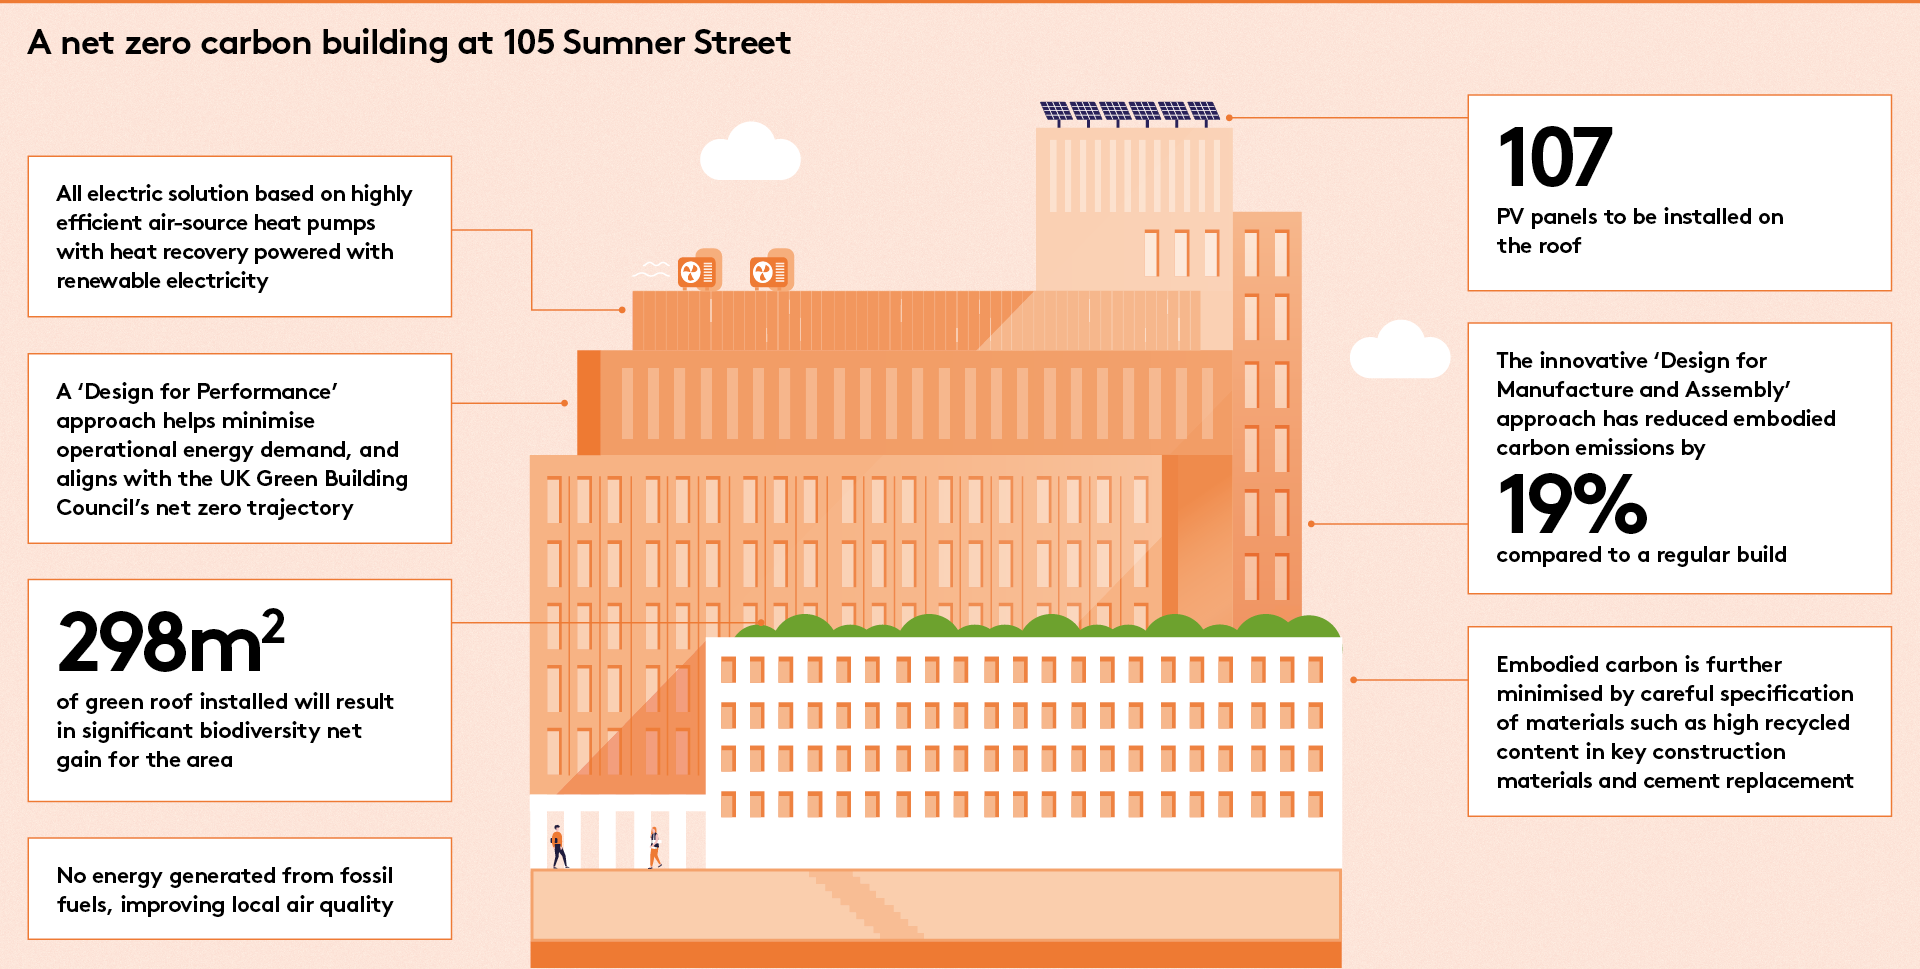 Sumner Street -  a net zero carbon development